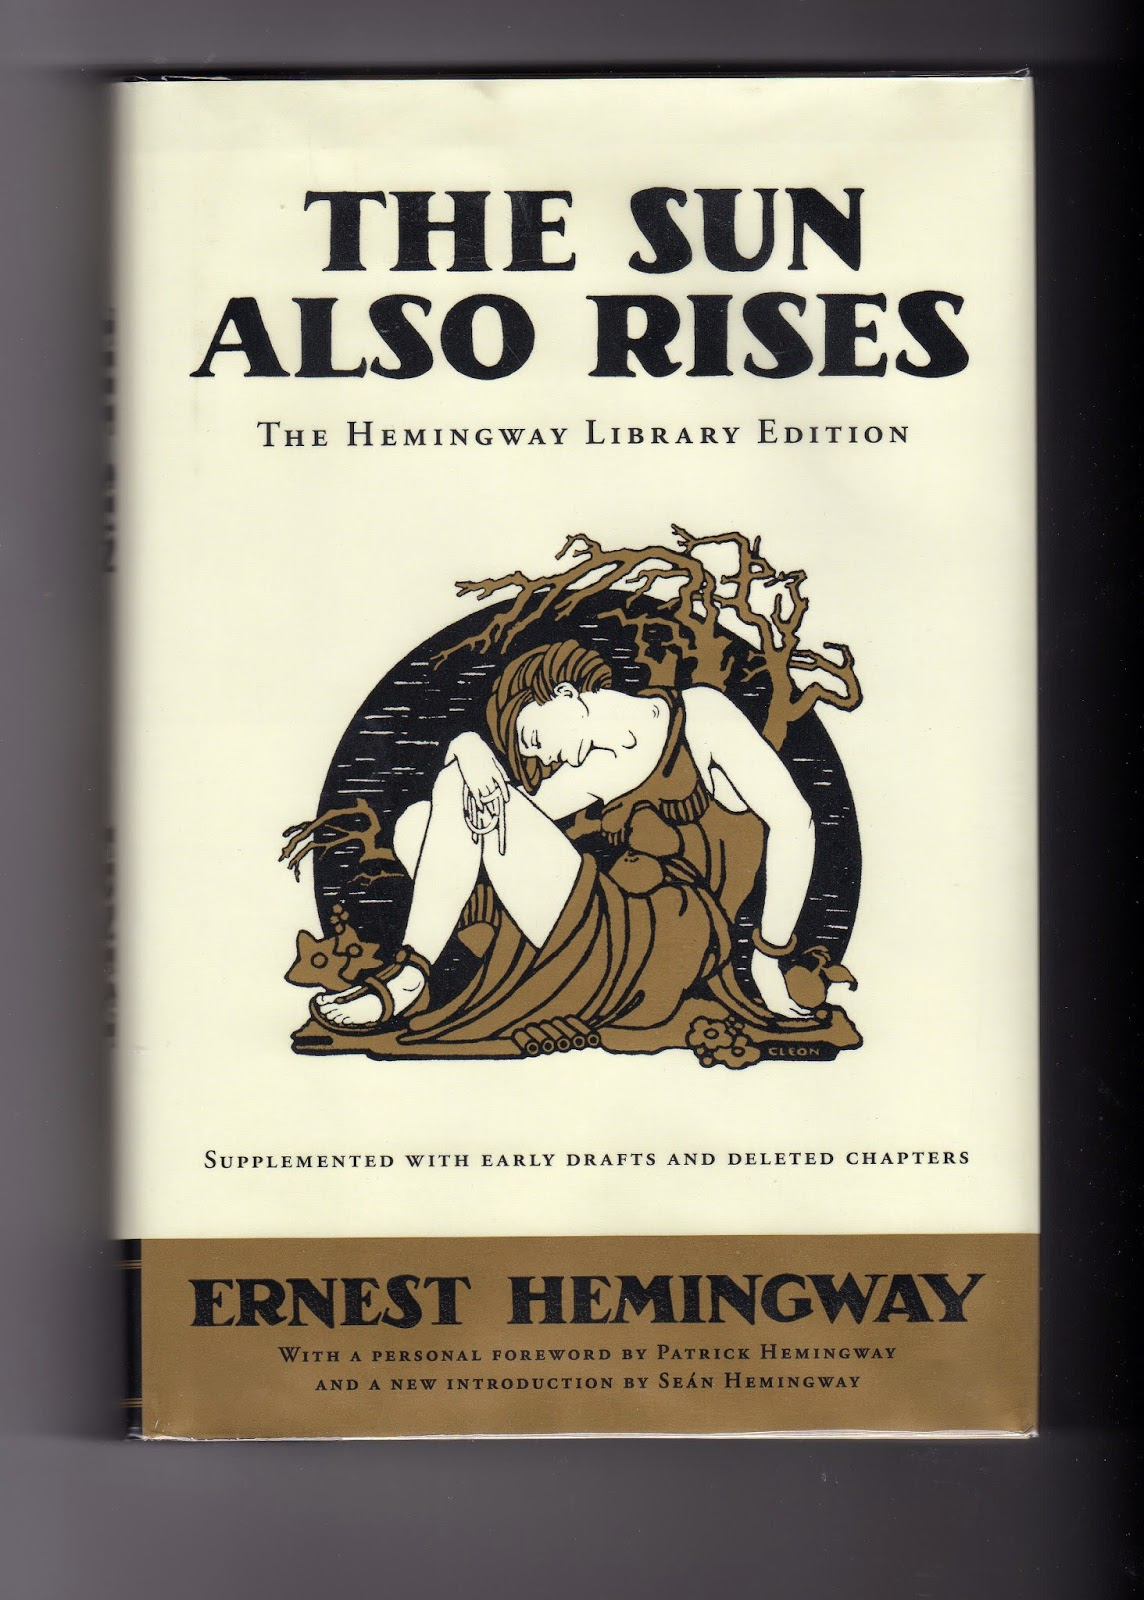 by means of Ernest Hemingway